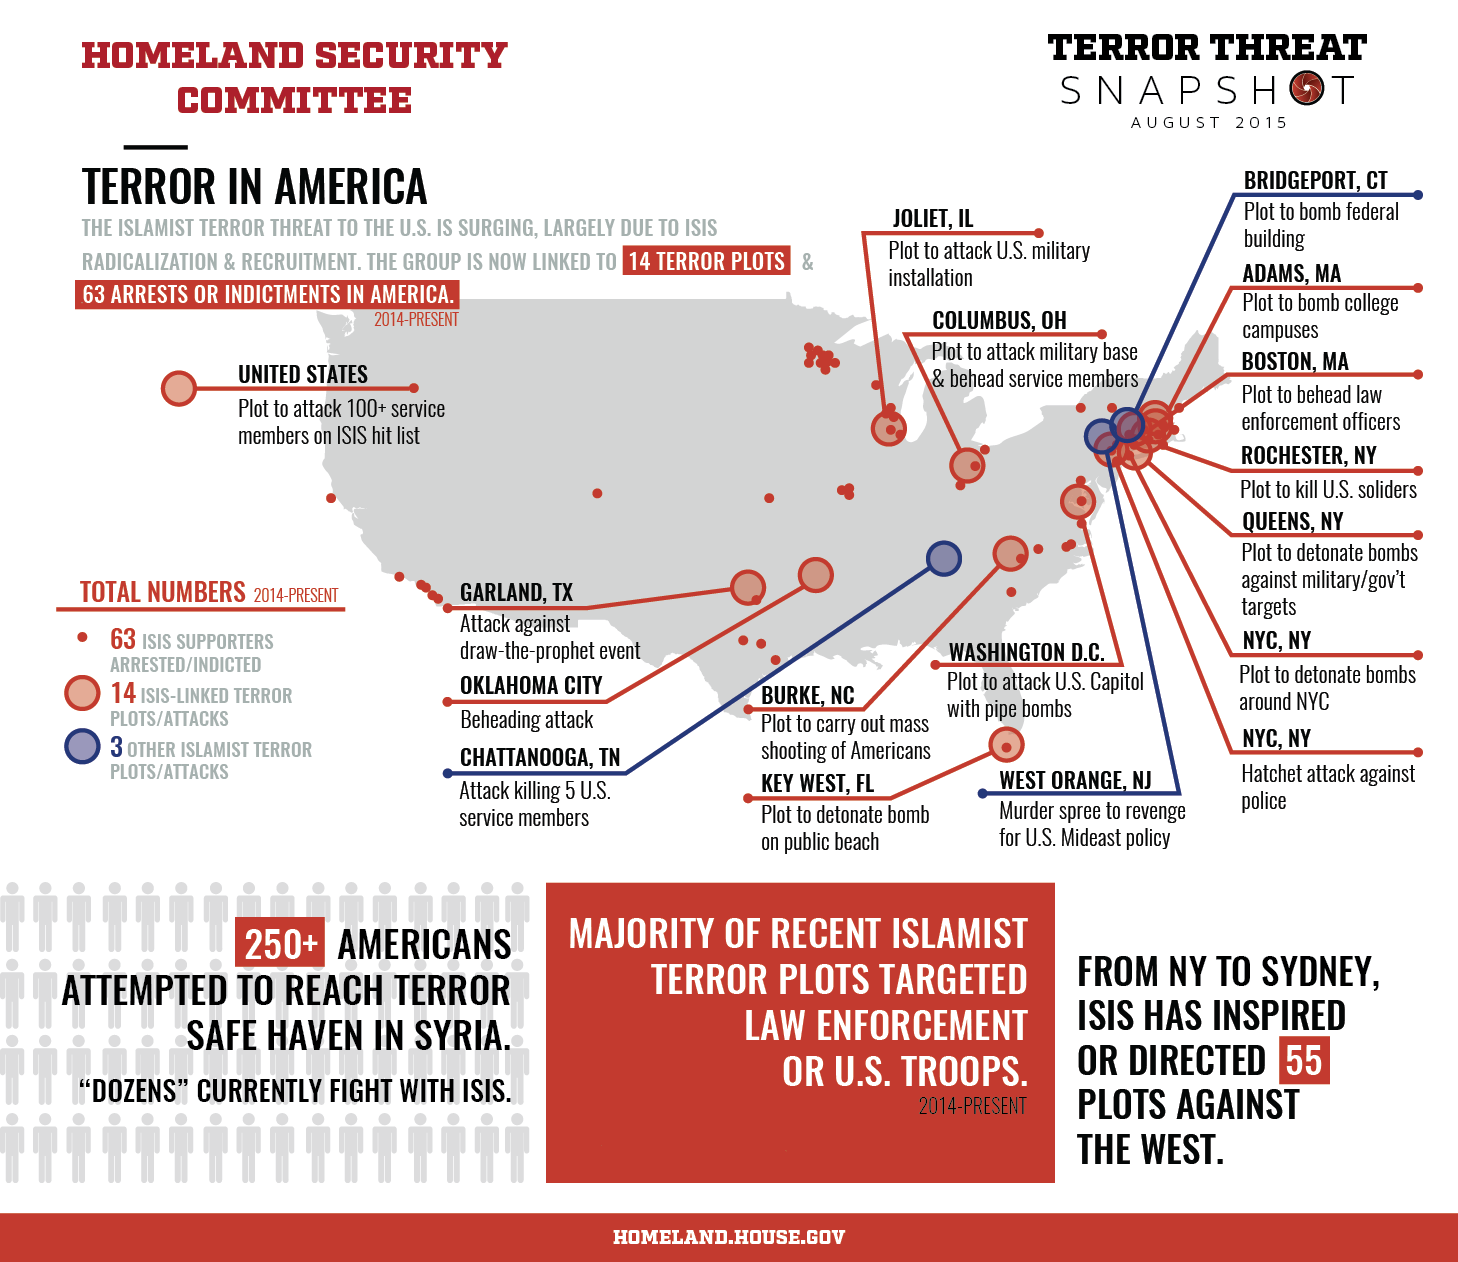 TerrorThreatSnapshot_Graphic_August_SMALL_Website.png